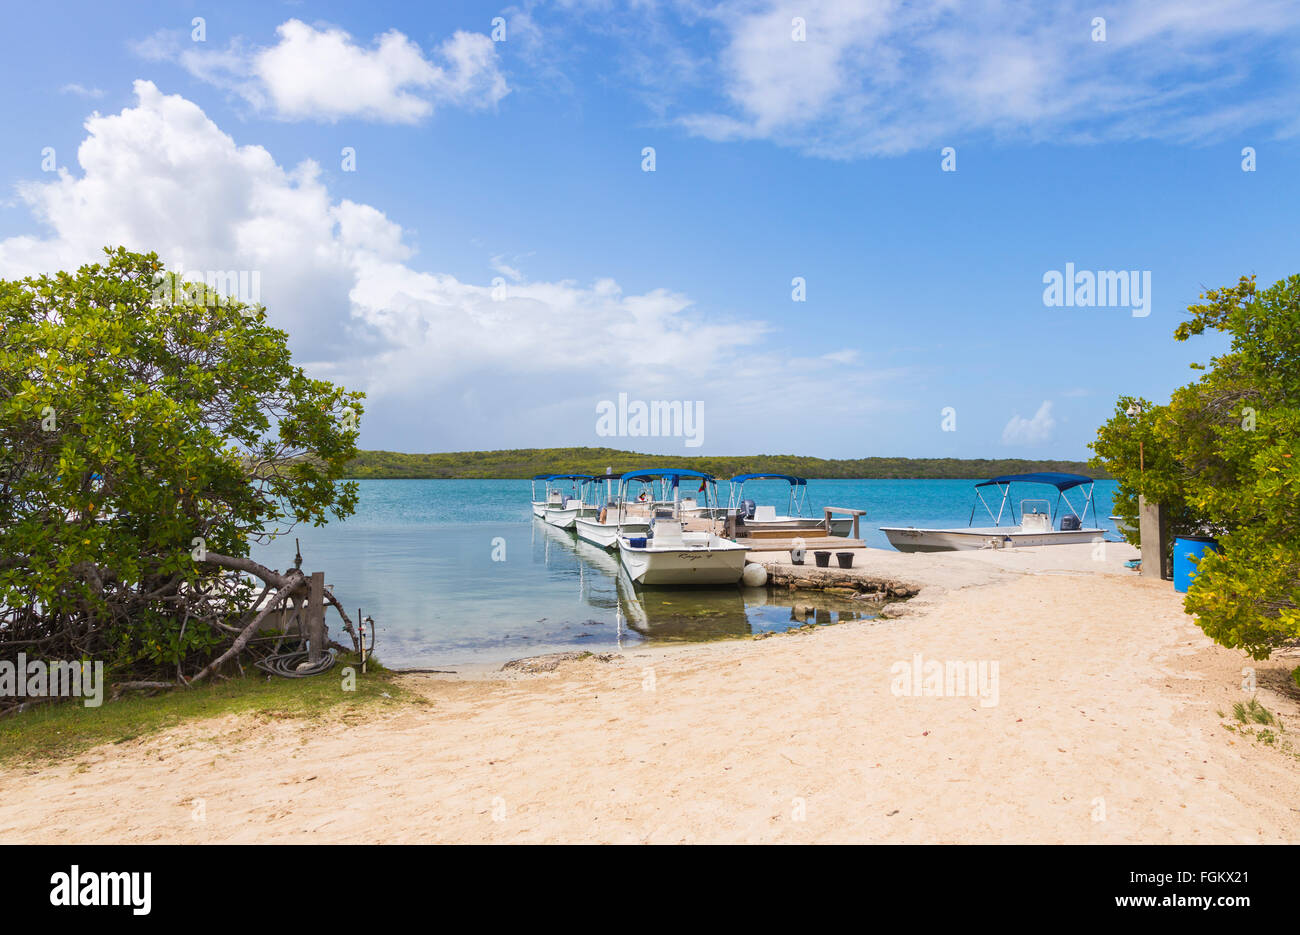 Boats moored at a jetty on a sandy beach at Stingray City on the east coast of Antigua, Antigua and Barbuda, West - Stock Image